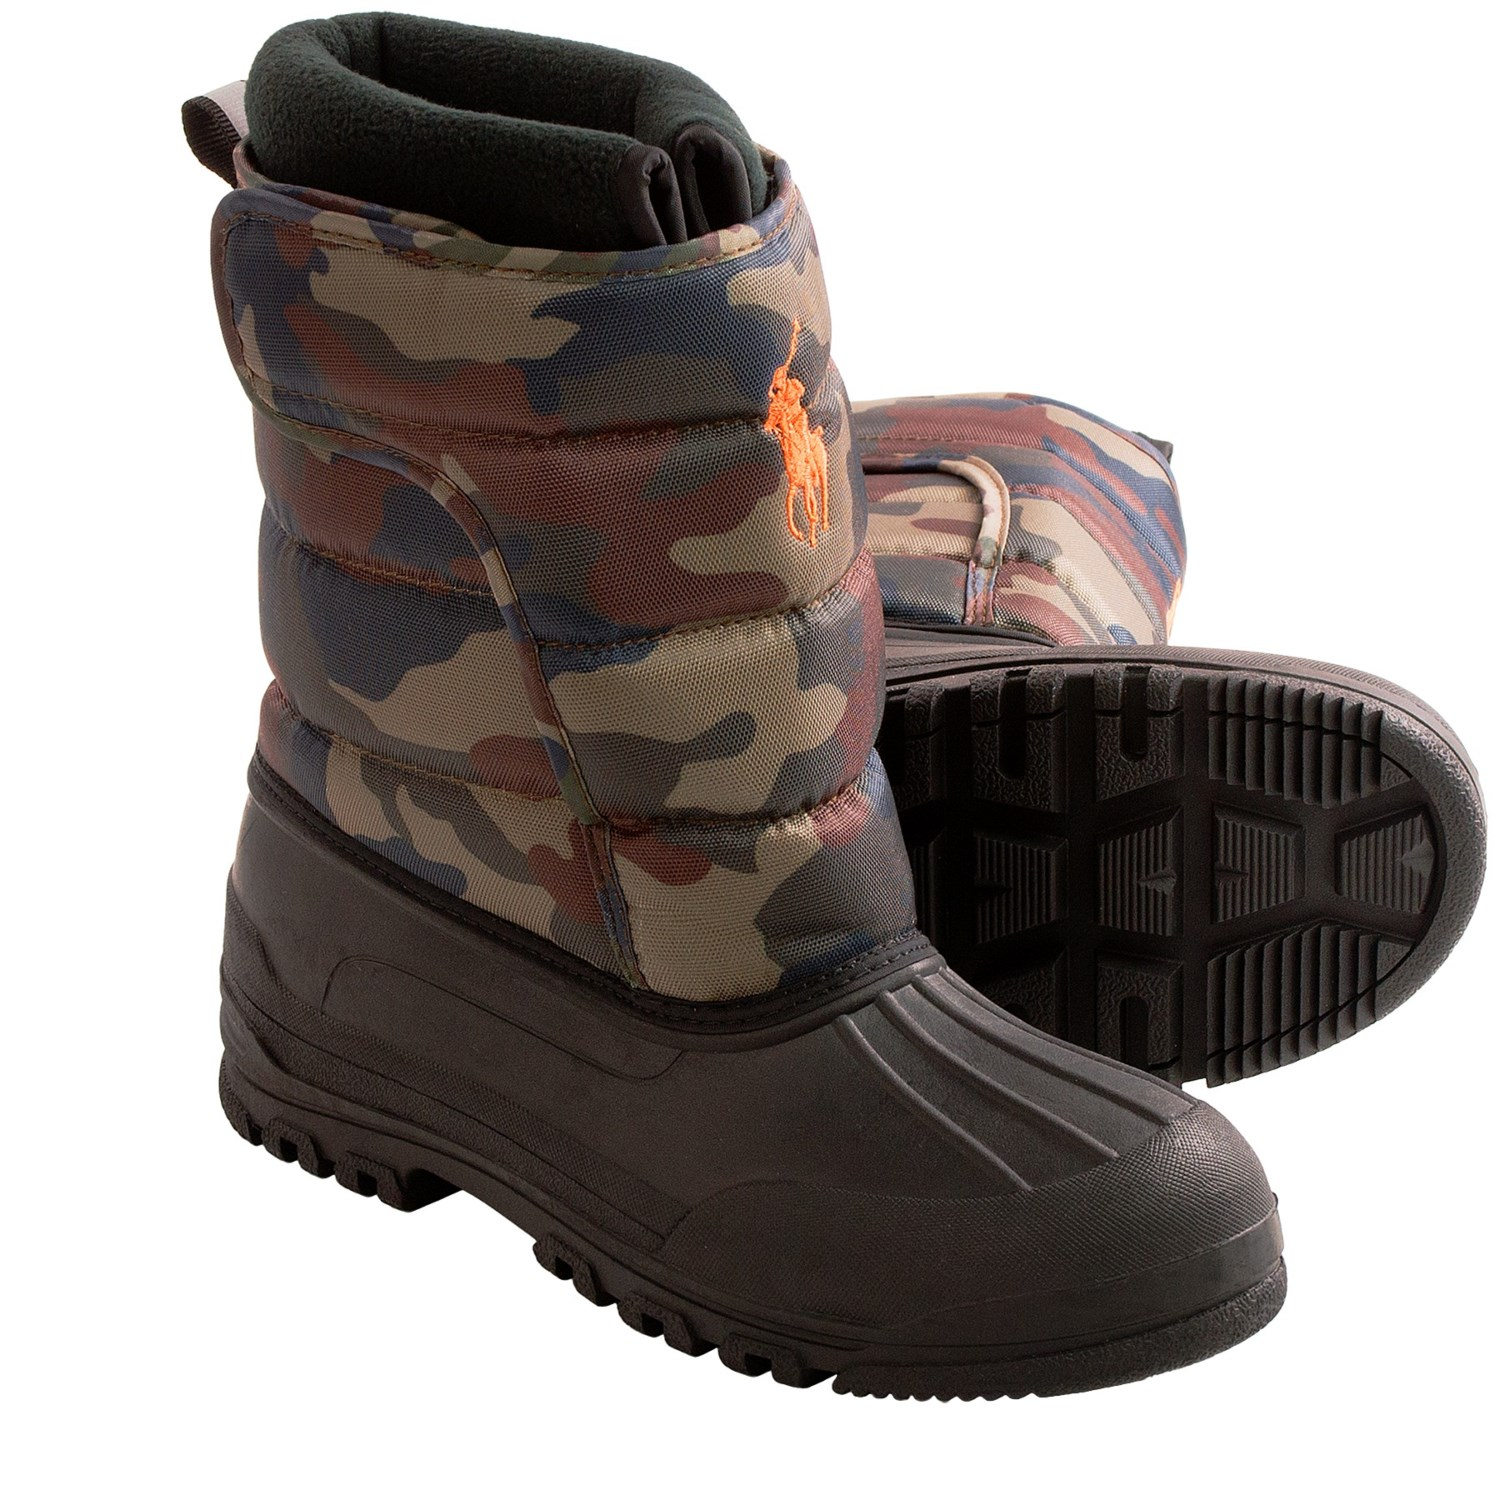 polo ralph lauren boots for kids the. Black Bedroom Furniture Sets. Home Design Ideas